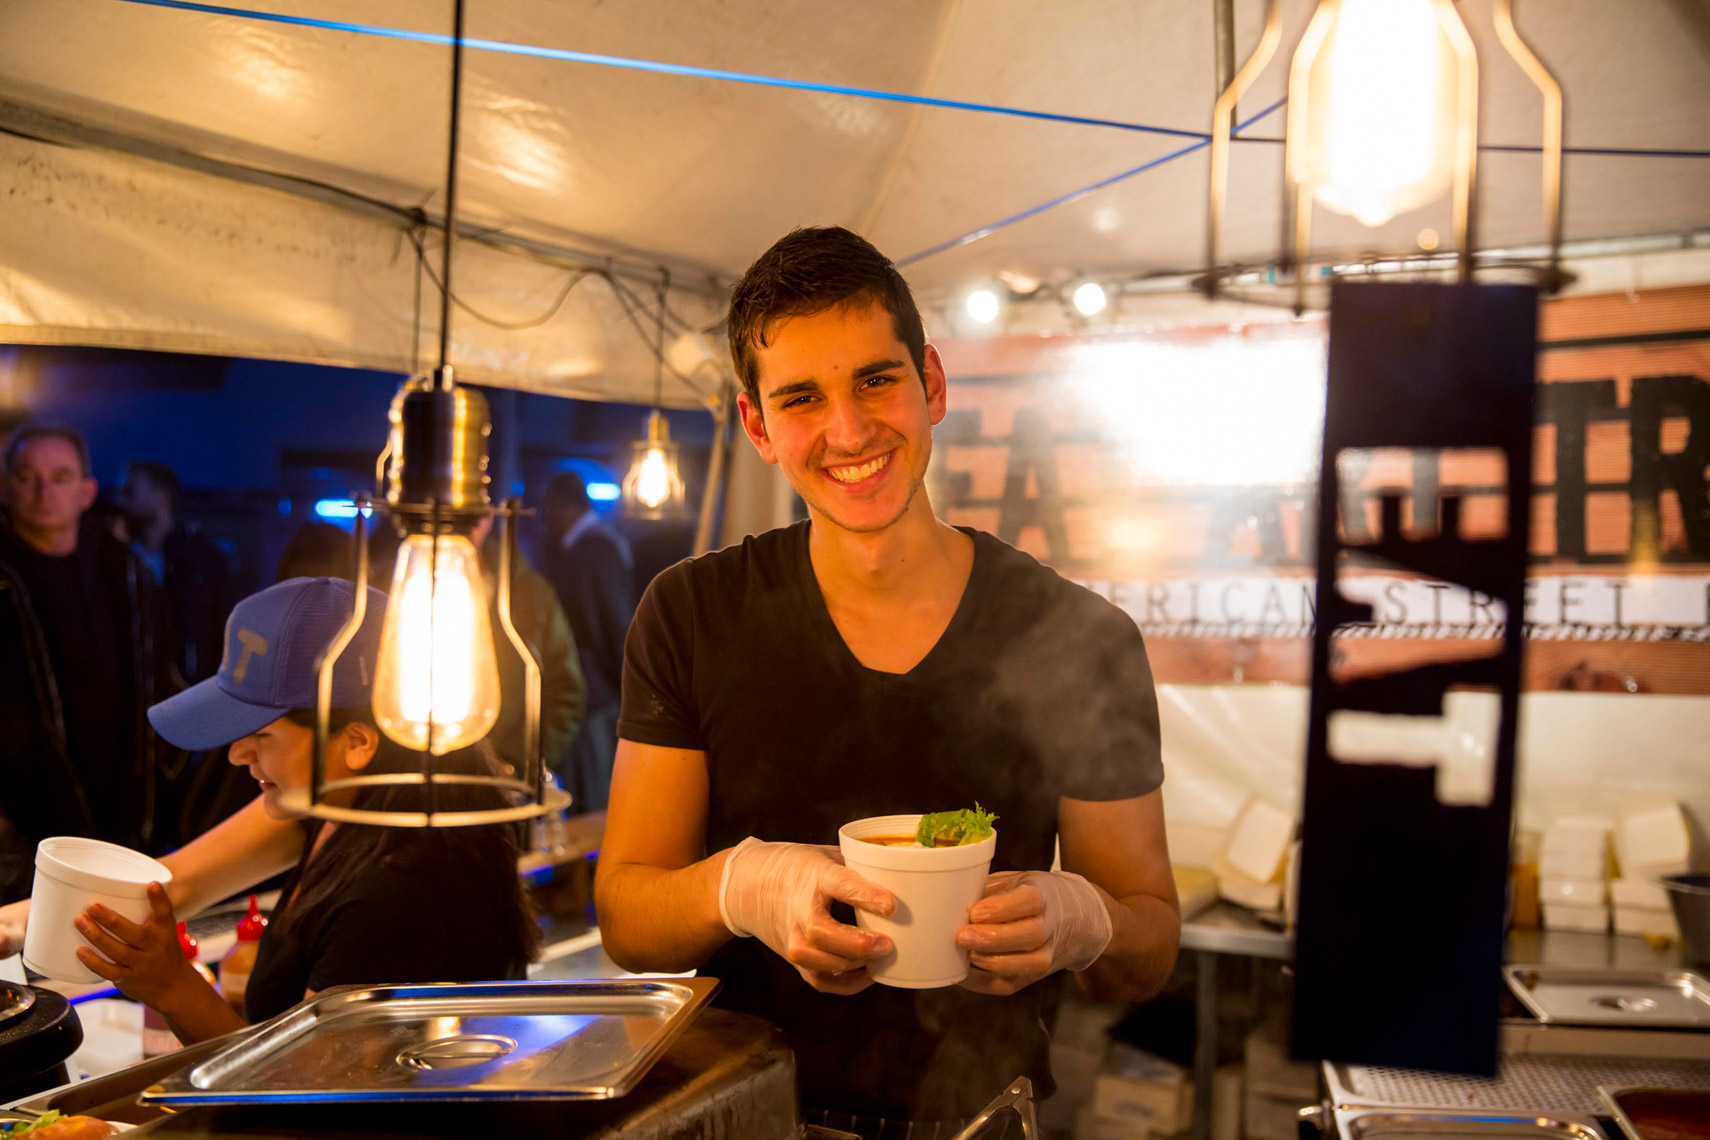 Vivid-Sydney-2014_Food-Trucks_James-Horan_DNSW-027